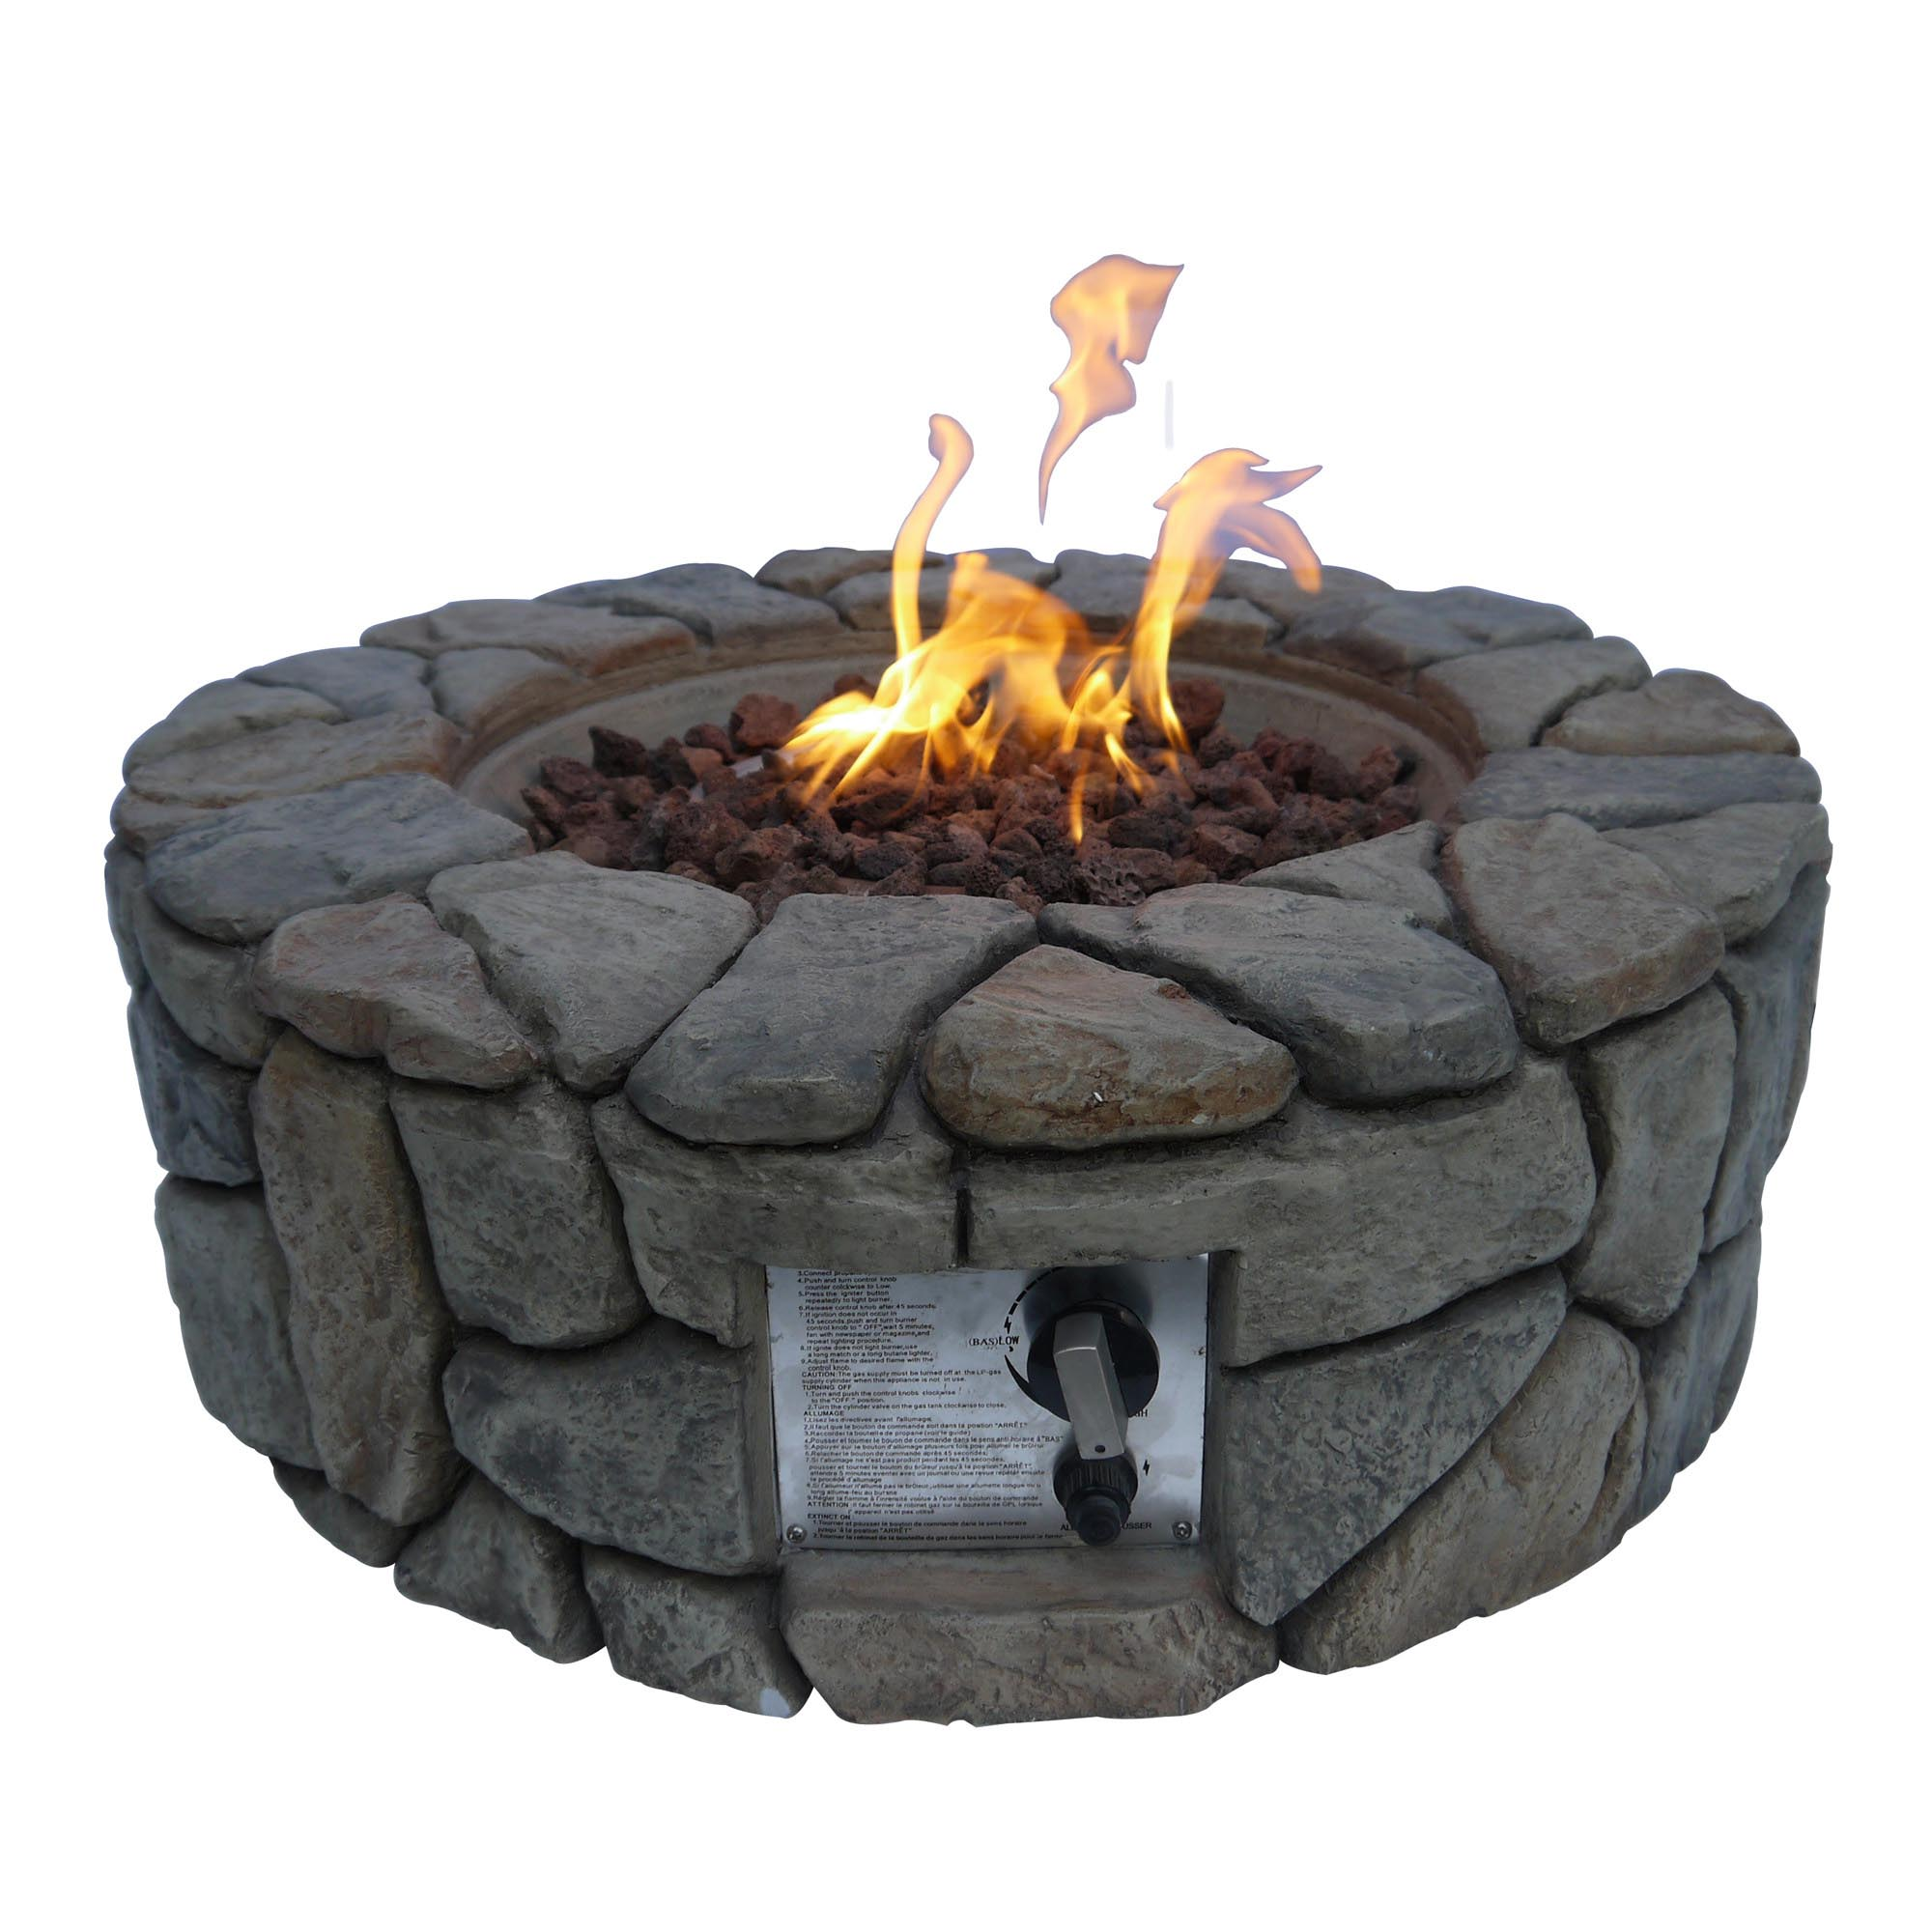 Ceramic Stones For Bbq : Ceramic fire pit stones design ideas